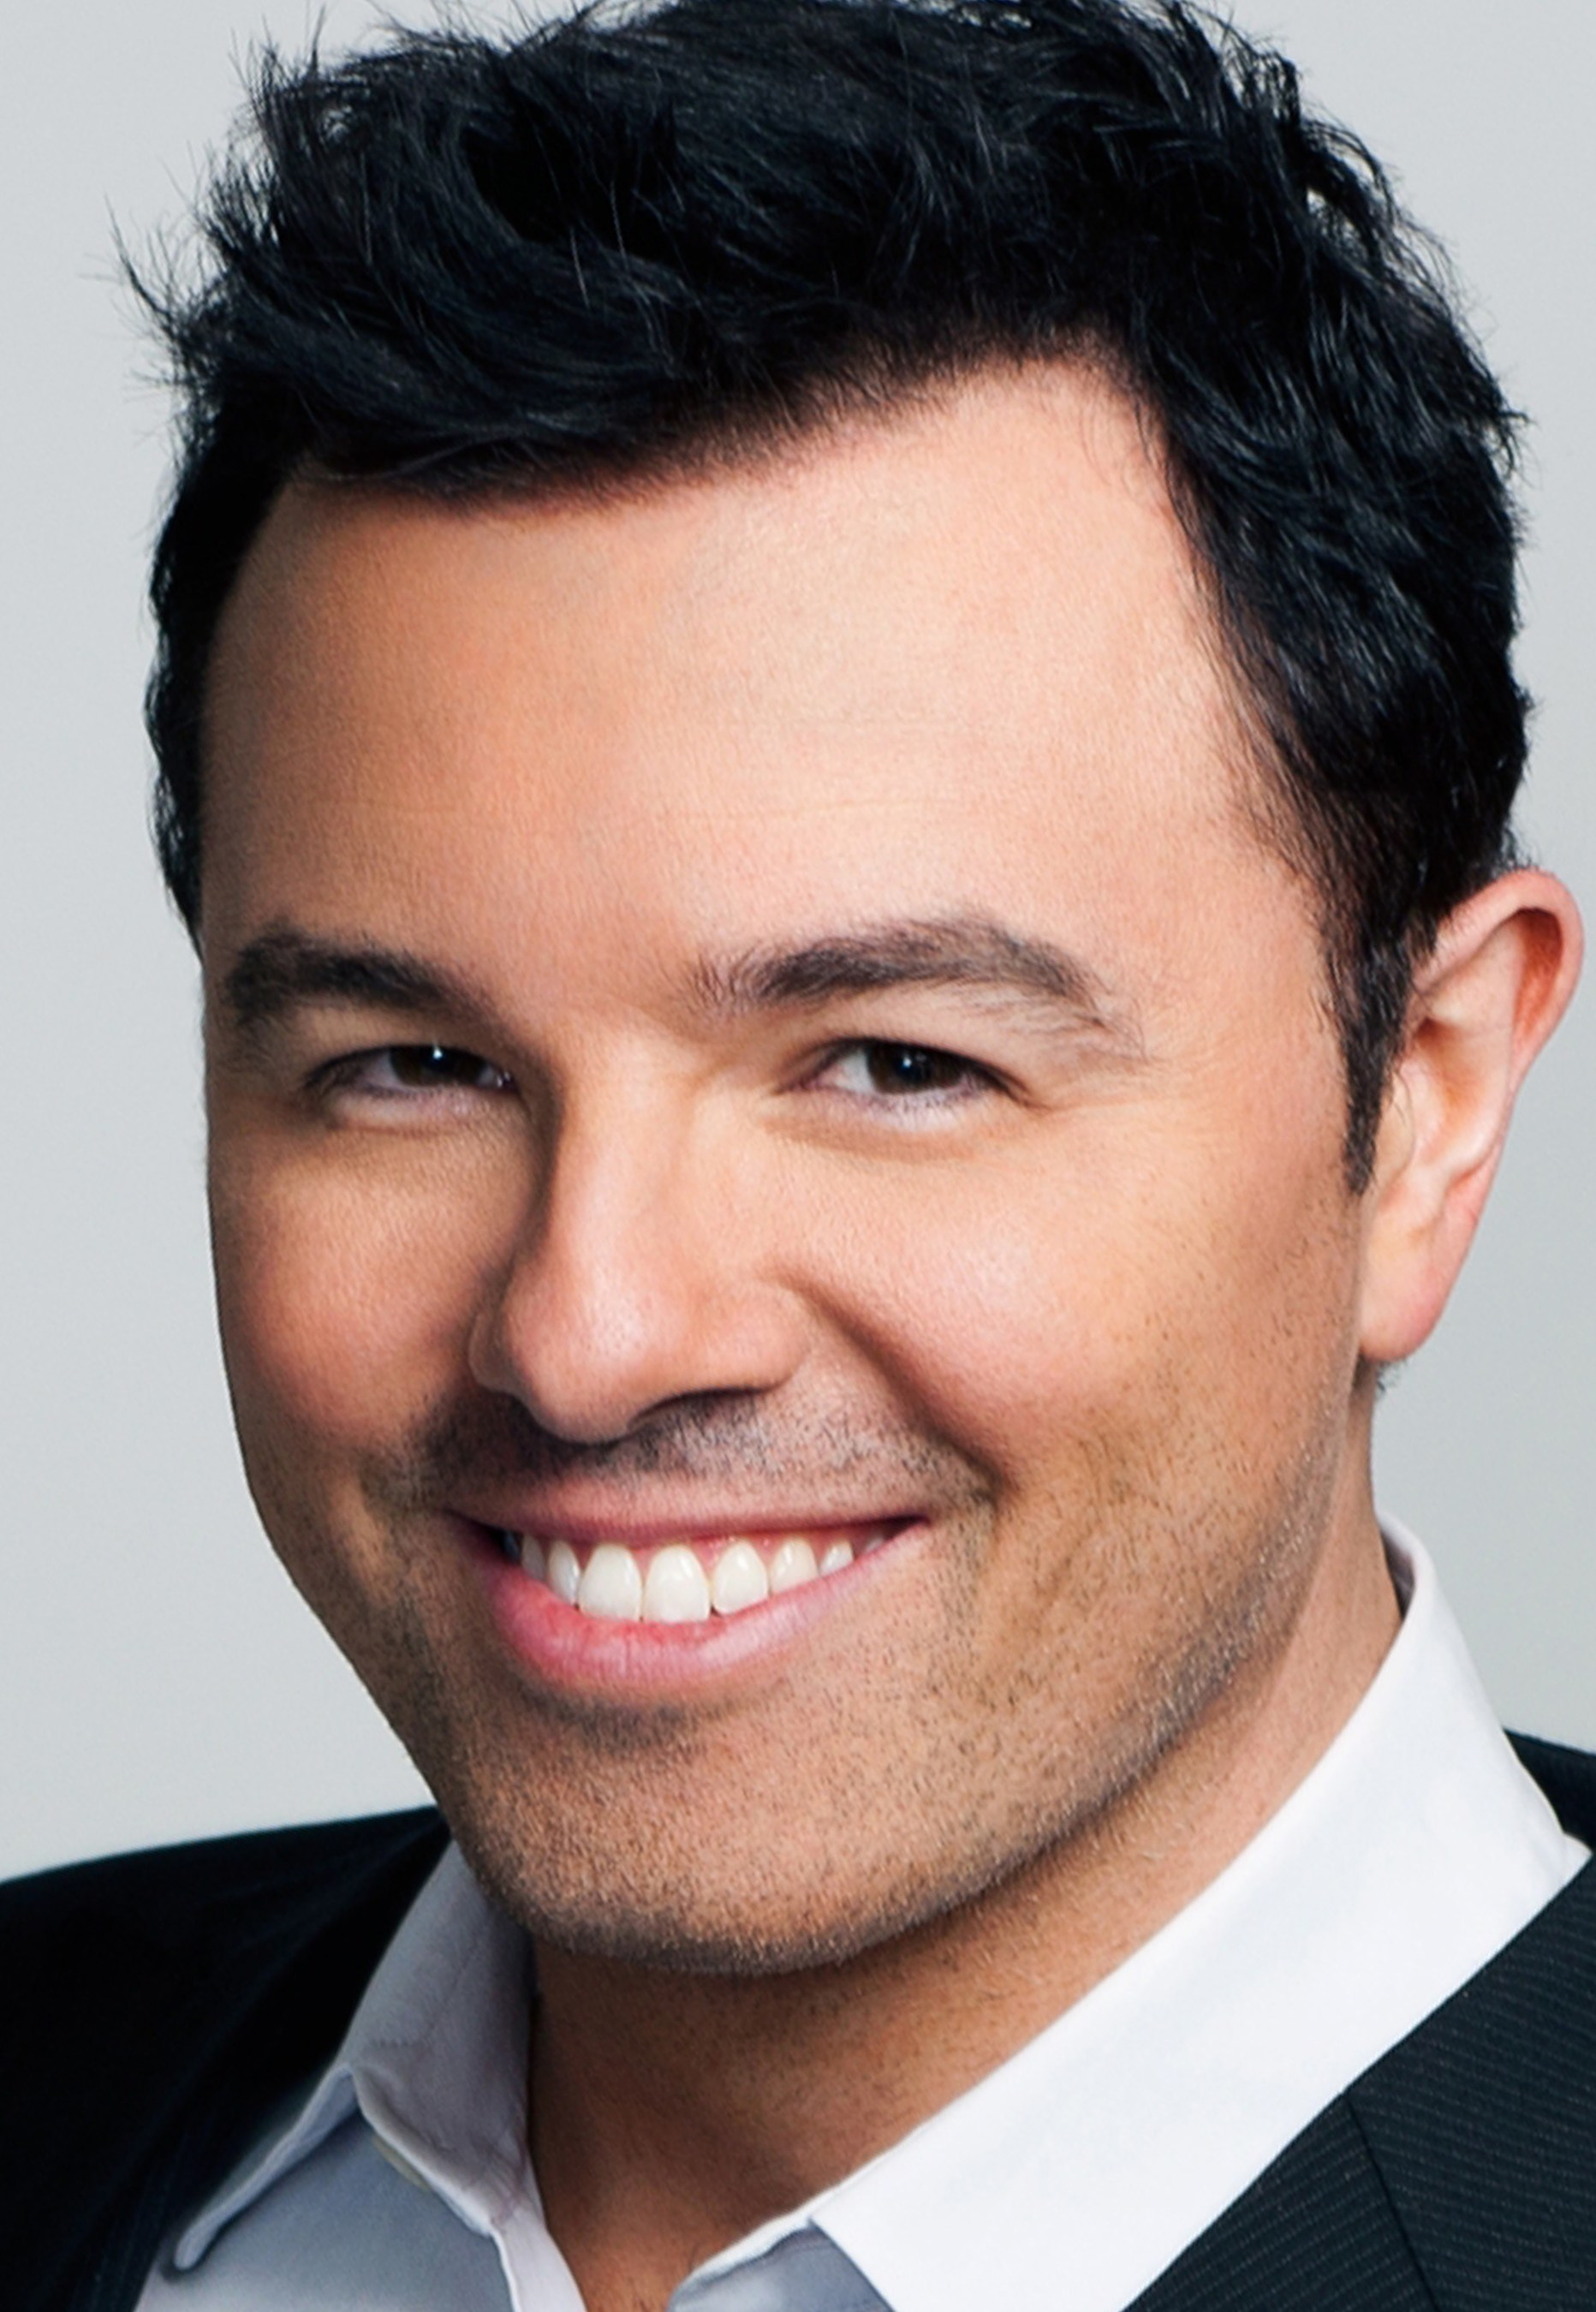 Four-time Grammy nominated singer Seth MacFarlane will bring his renowned talents to the Encore Theater Stage at Wynn Las Vegas for a two-night engagement at 7:30 p.m. on April 29 and 30.